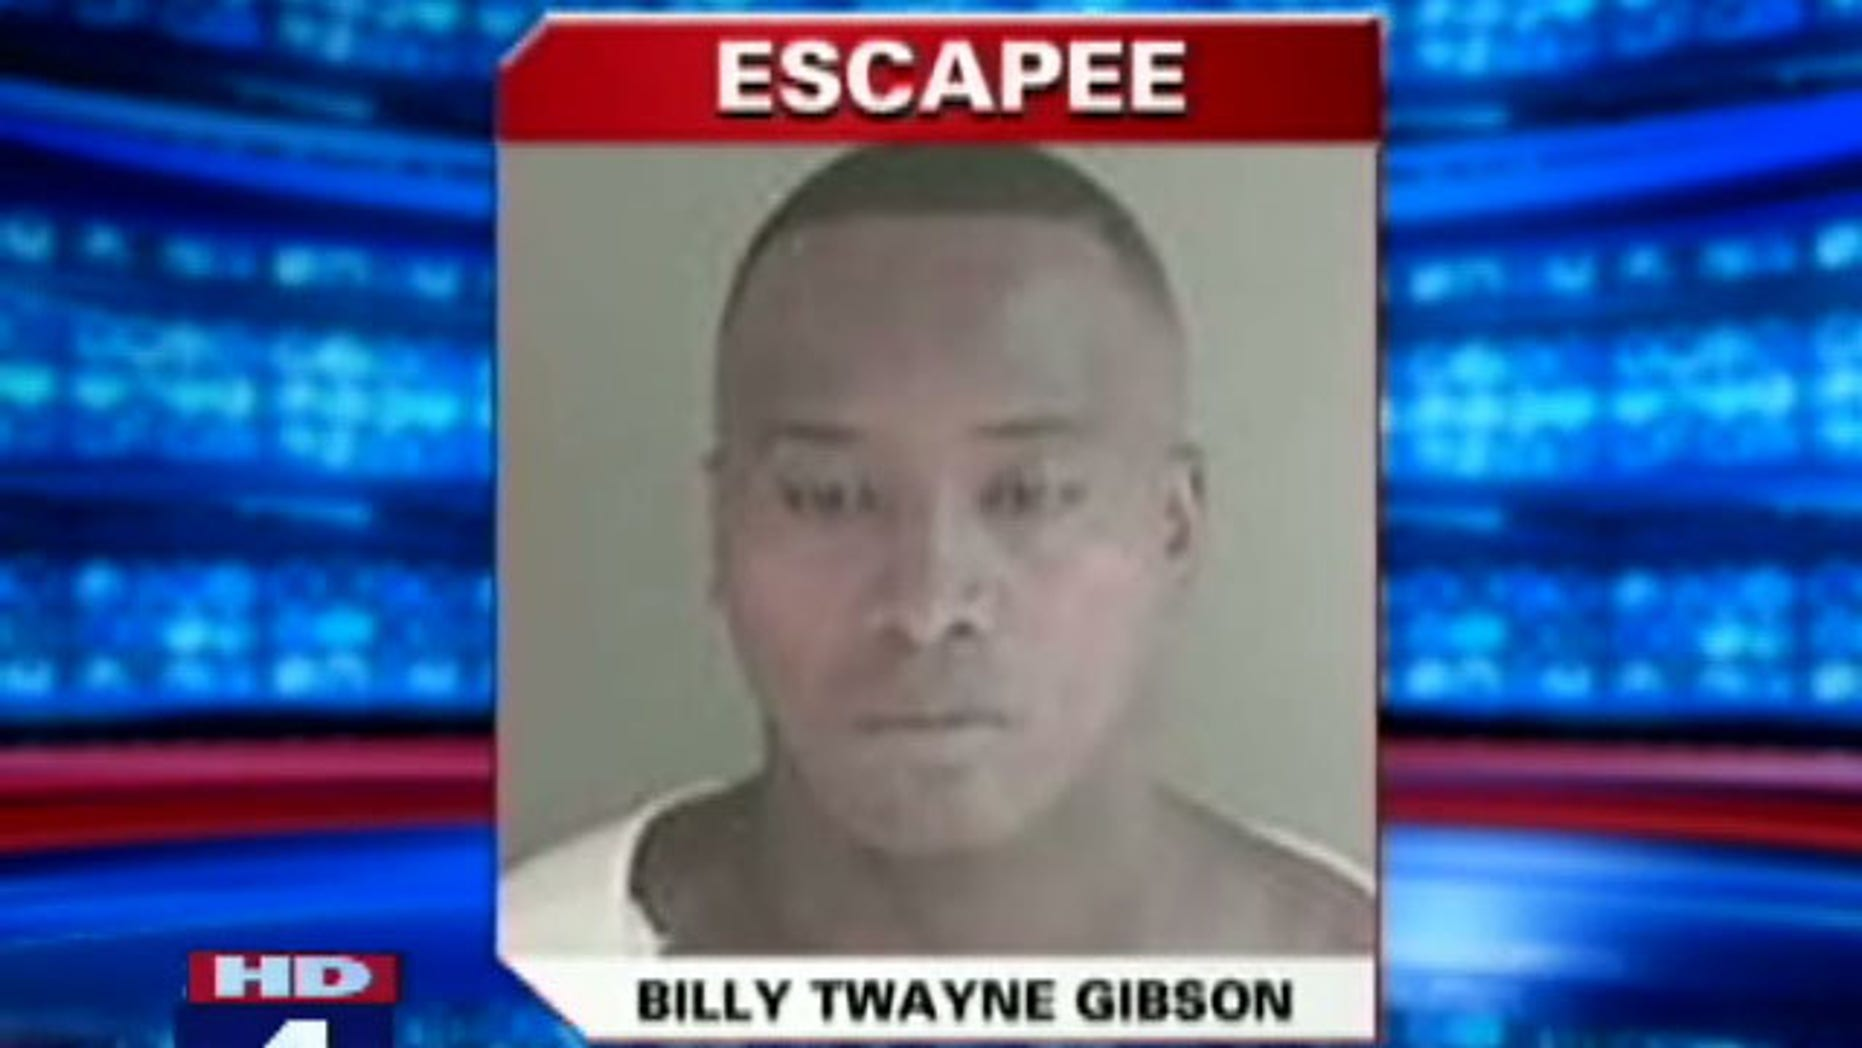 Billy Twayne Gibson